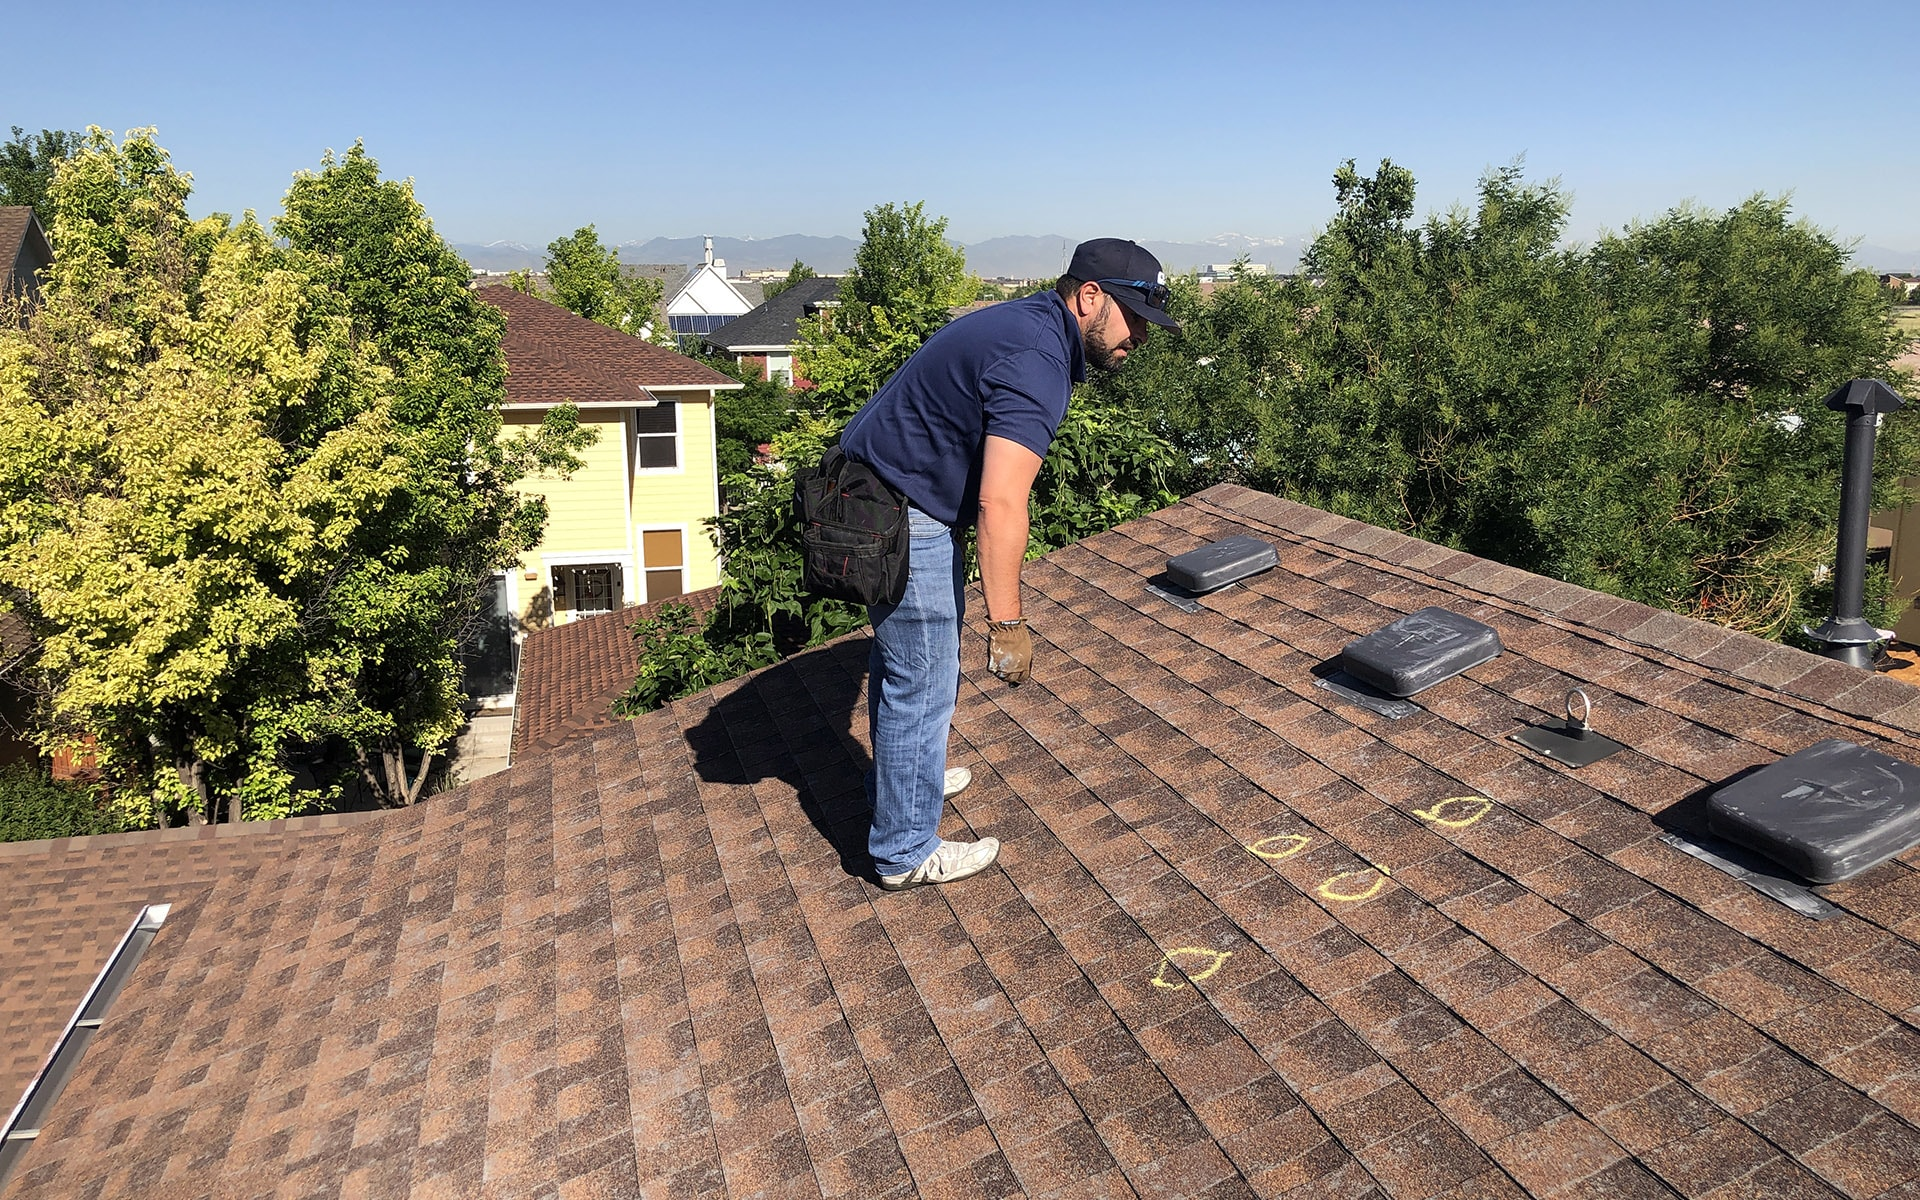 Metro City Roofing salesperson in a blue shirt and black hat inspecting a red shingle roof and marking hail impact marks in yellow chalk in Denver, Colorado with blue sky in the background